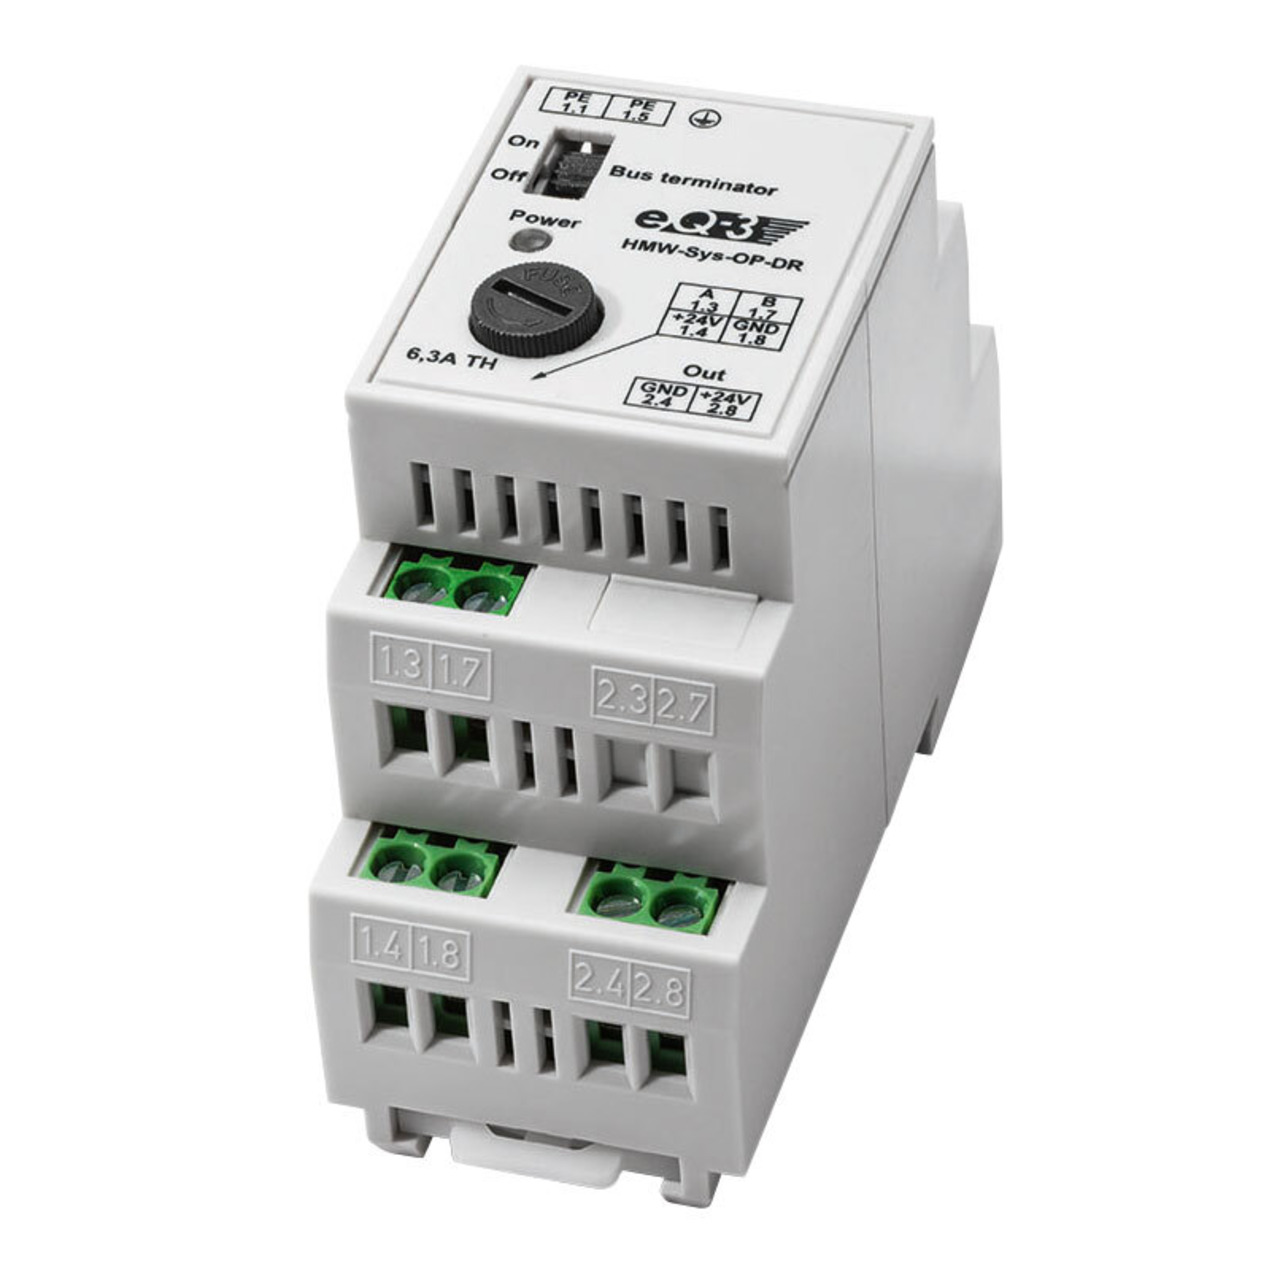 Homematic Wired RS485 Überspannungsschutz HMW-Sys-OP-DR für Smart Home - Hausautomation